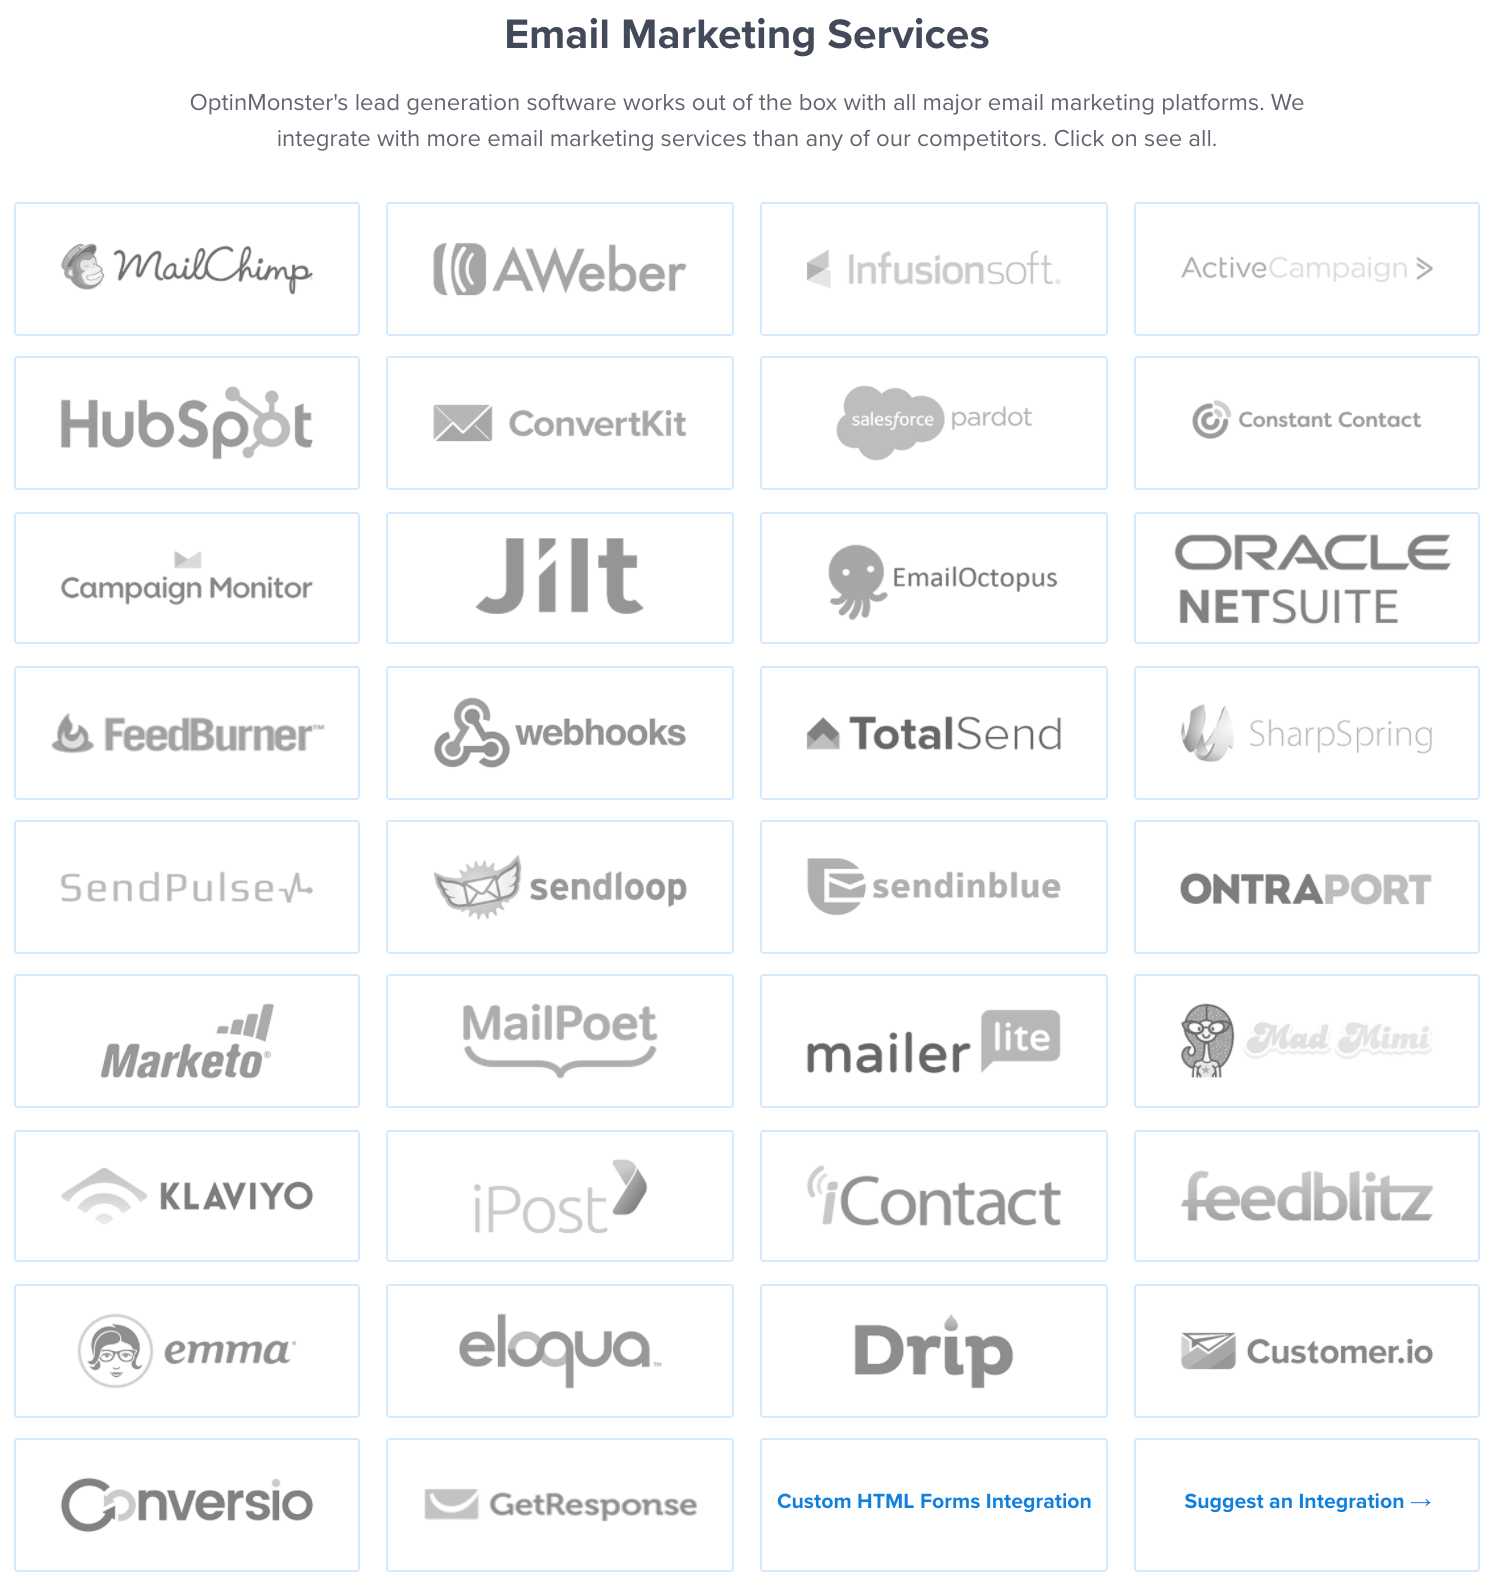 OptinMonster Integrations with Website & E-Commerce tools